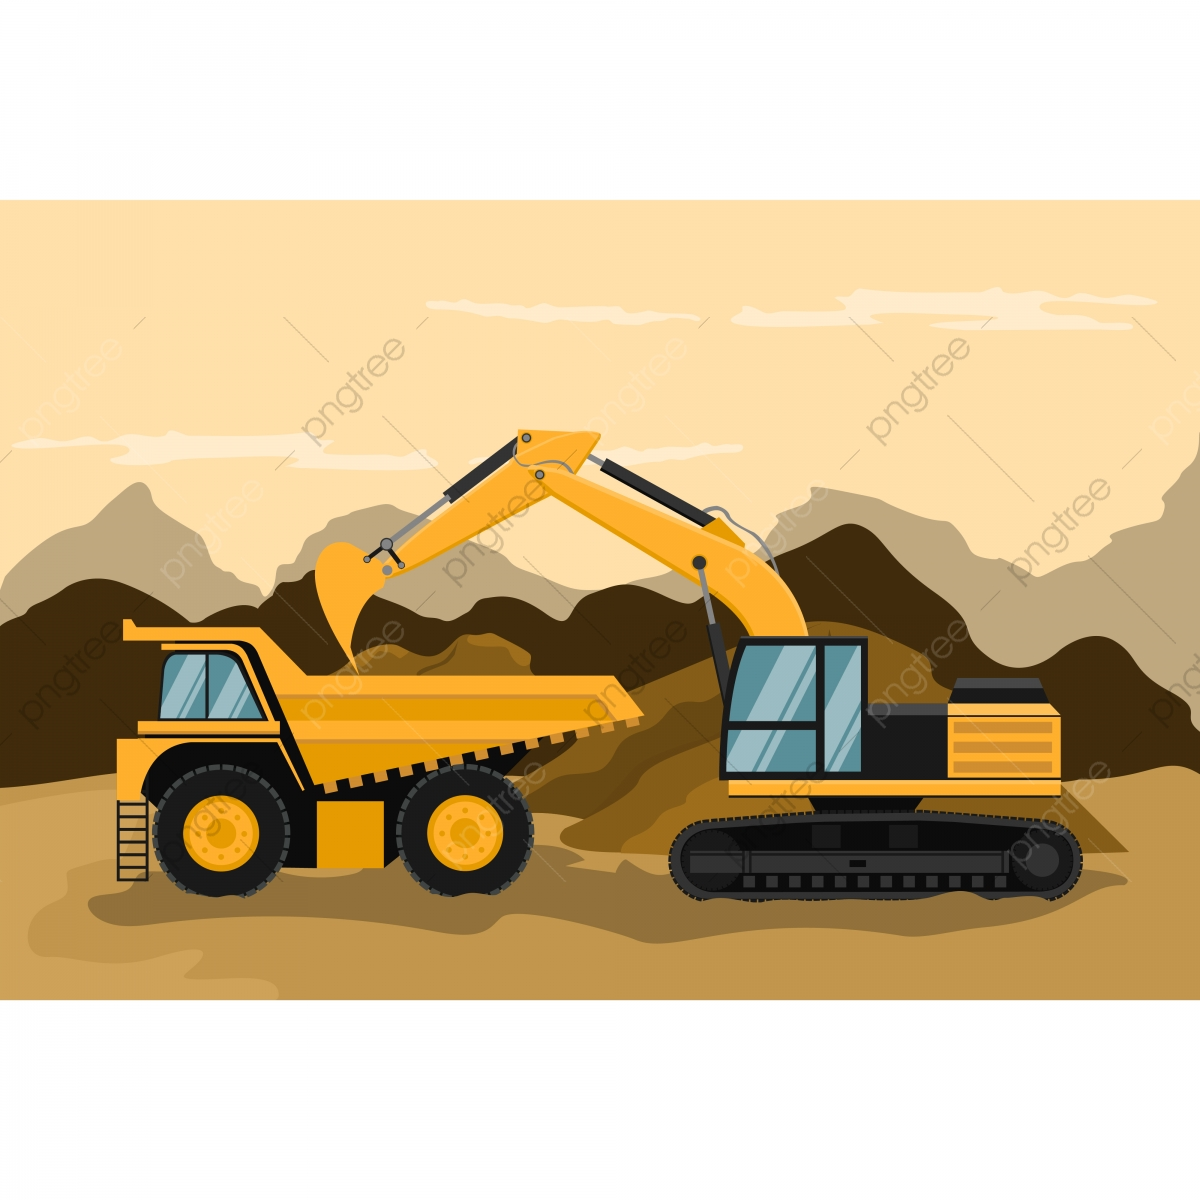 Mining truck and caterpillar. Backhoe clipart excavation